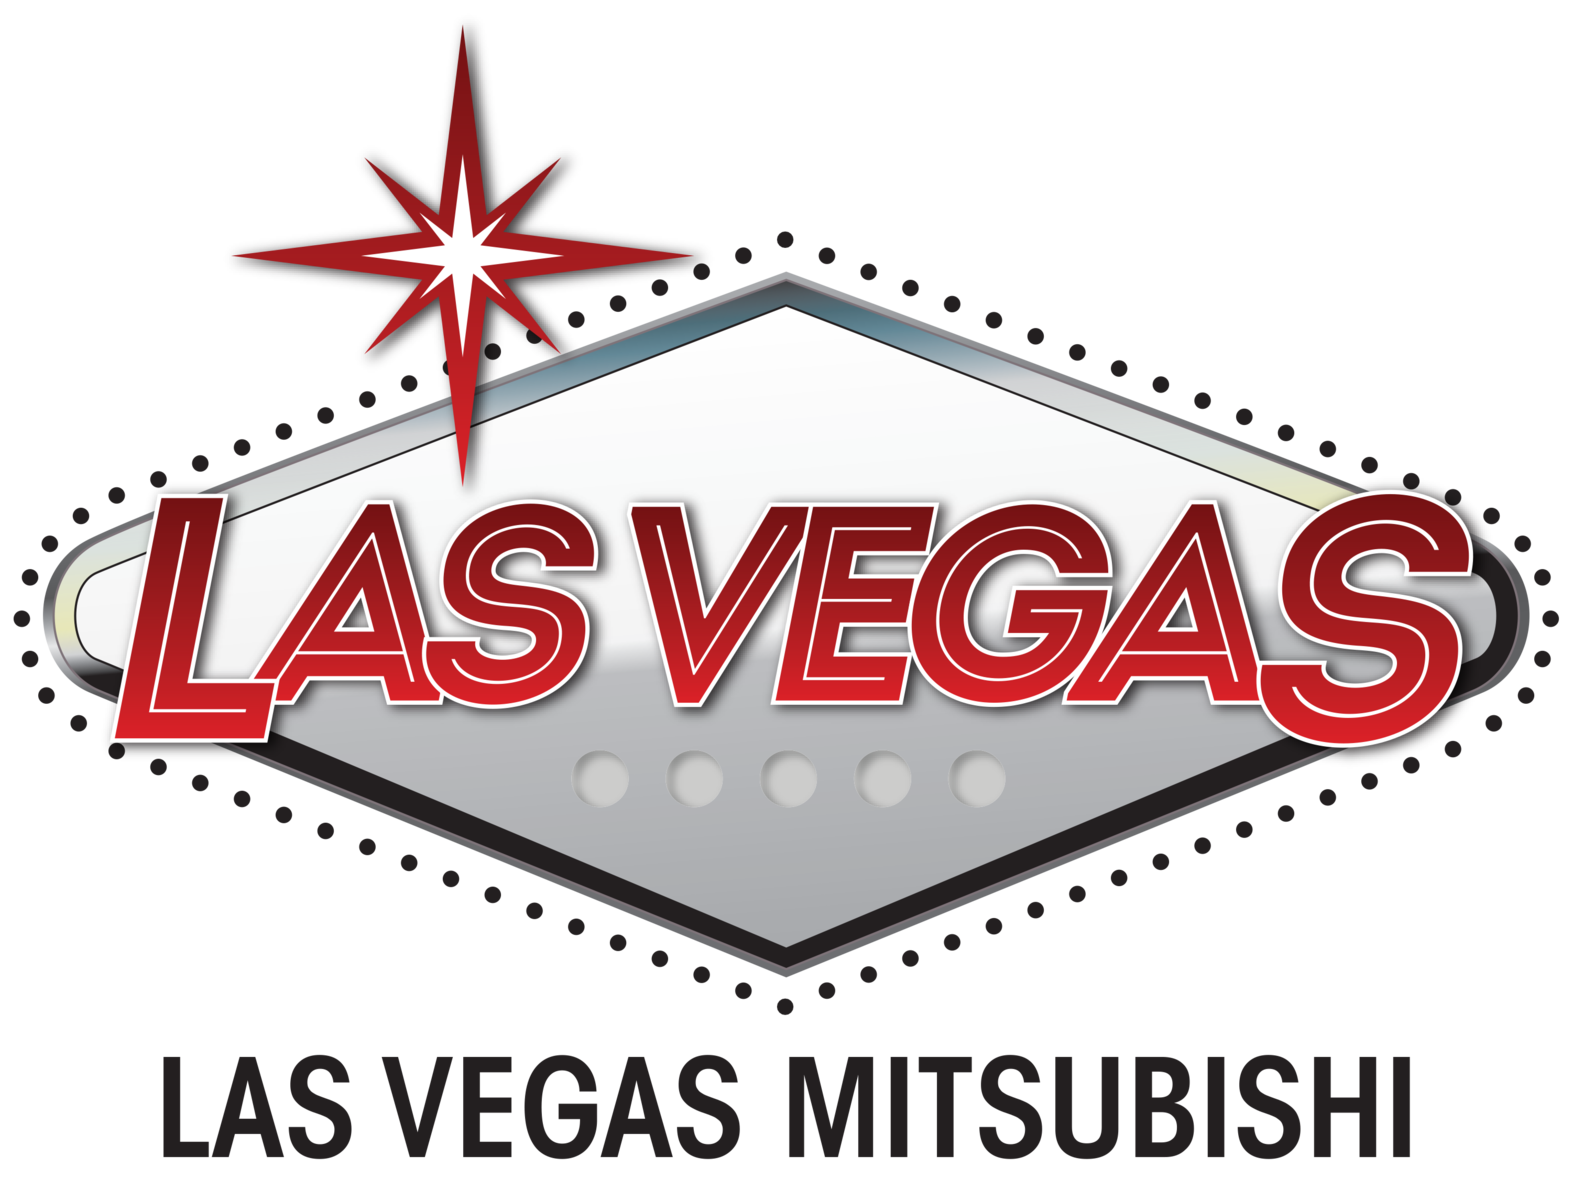 Mitsubishi Las Vegas >> Las Vegas Mitsubishi Las Vegas Nv Read Consumer Reviews Browse